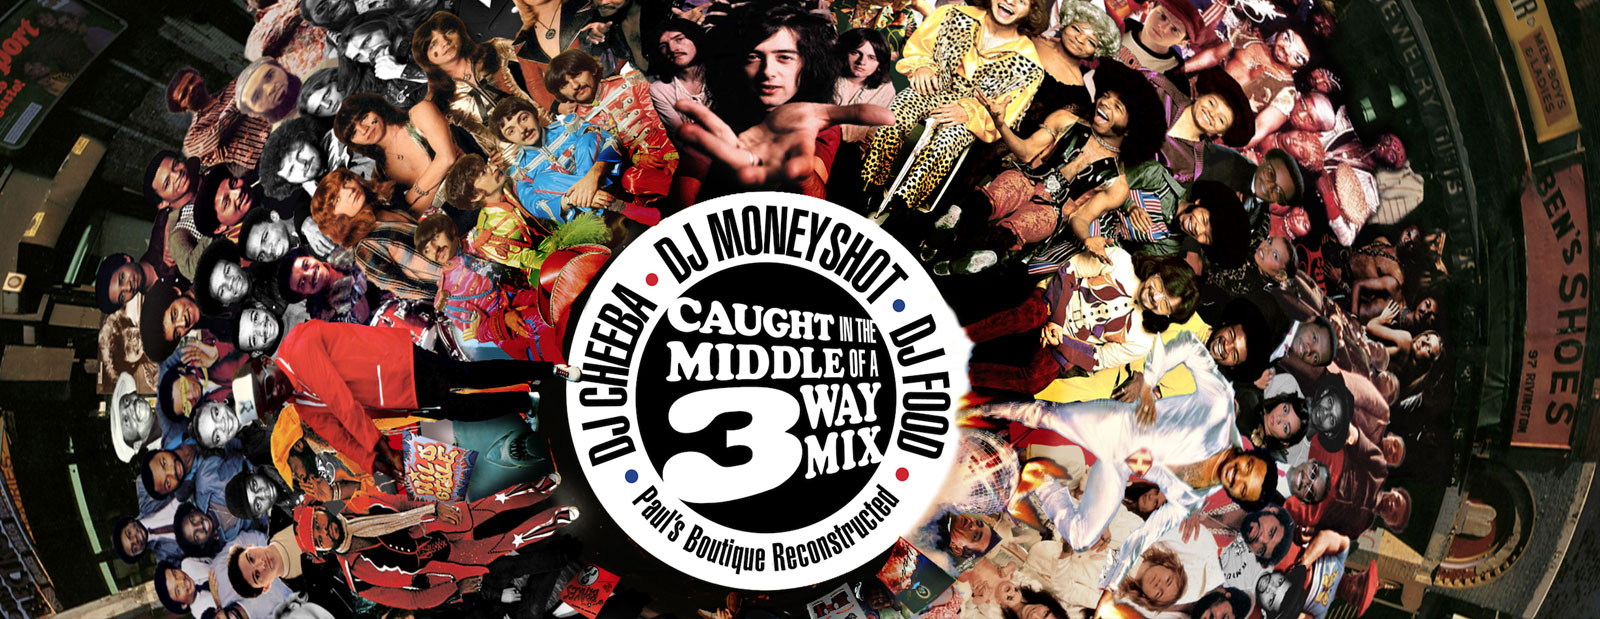 Caught In The Middle of A 3 Way Mix' – DJ's